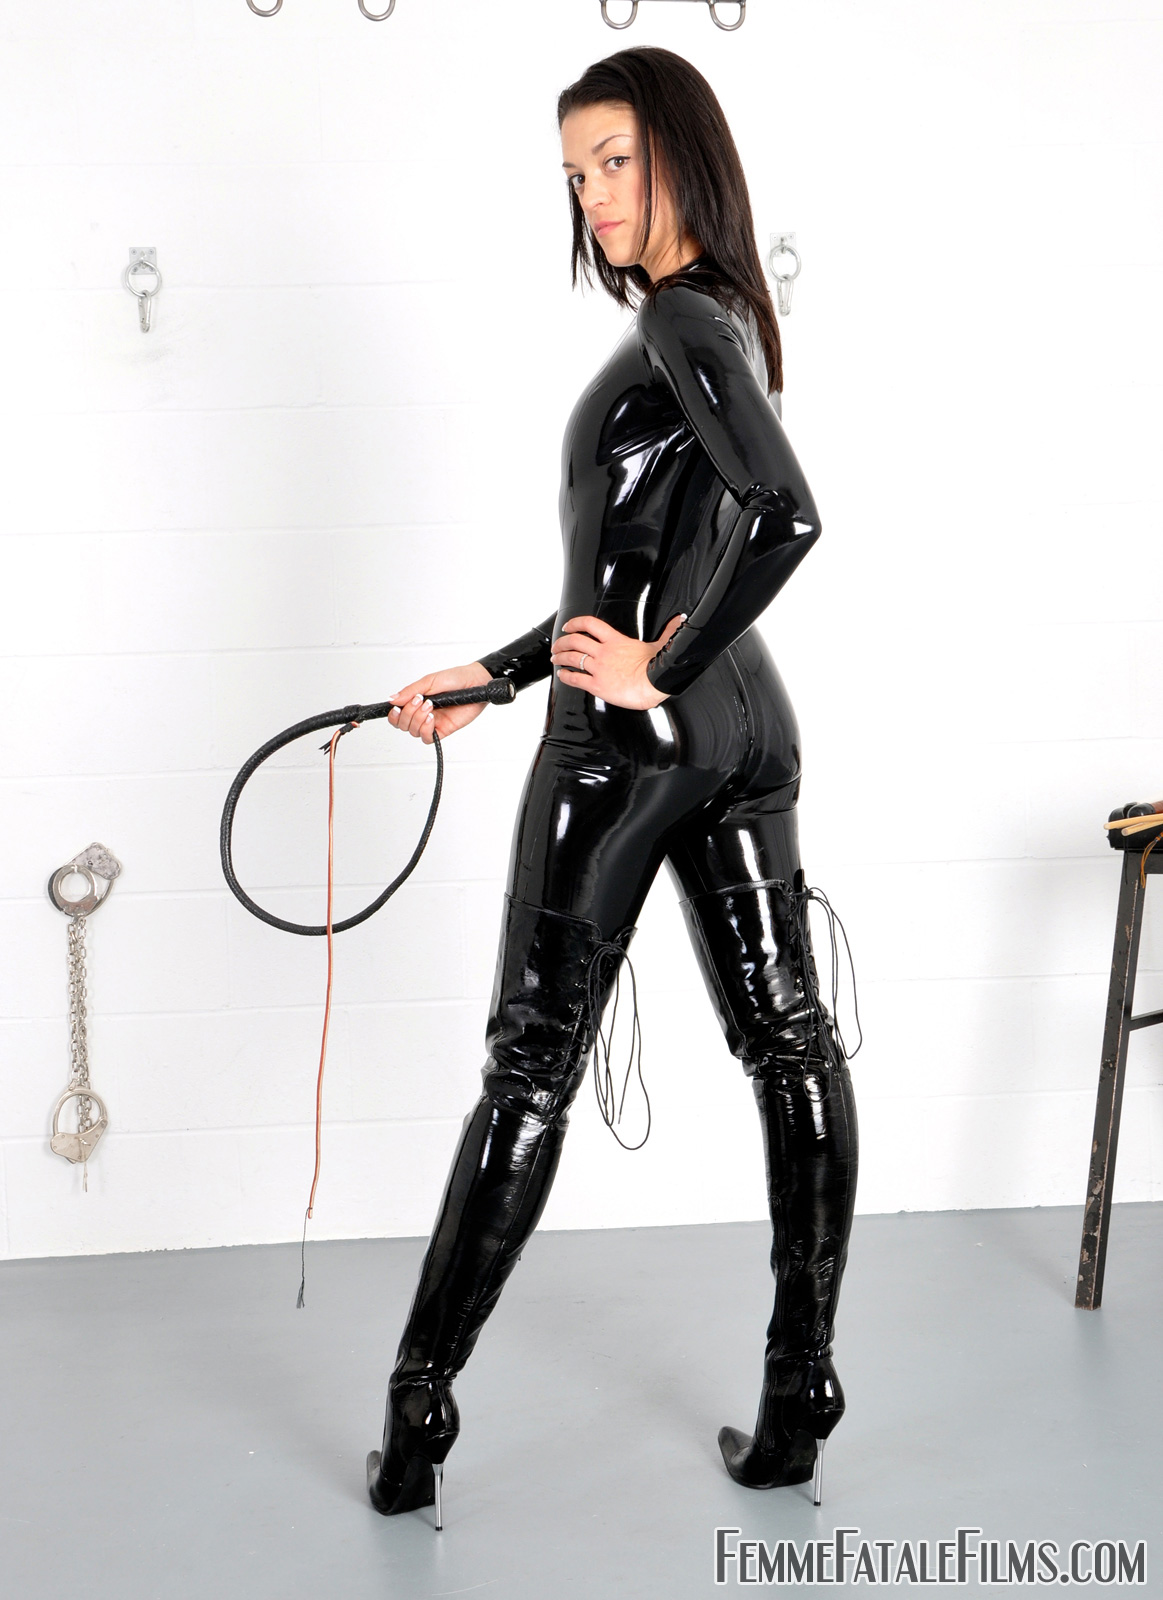 Femdom On Pinterest Mistress Latex And Dominatrix | Kumpulan Berbagai ...